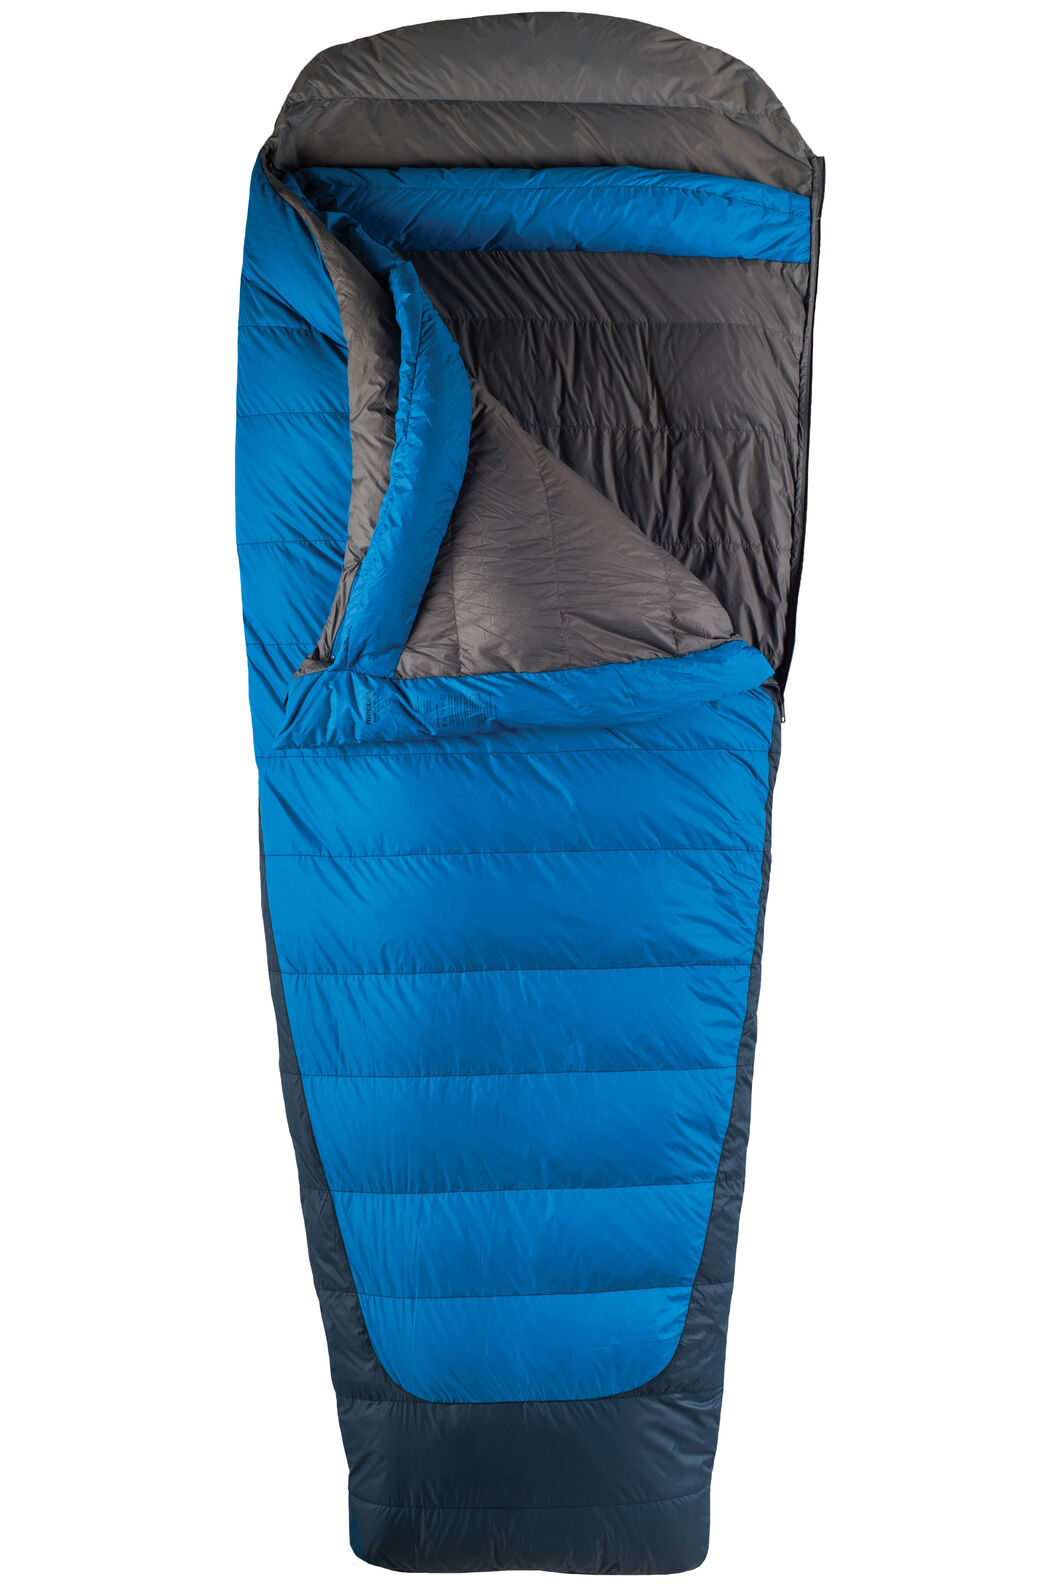 Macpac Escapade Down 350 Sleeping Bag - Extra Large, Classic Blue, hi-res